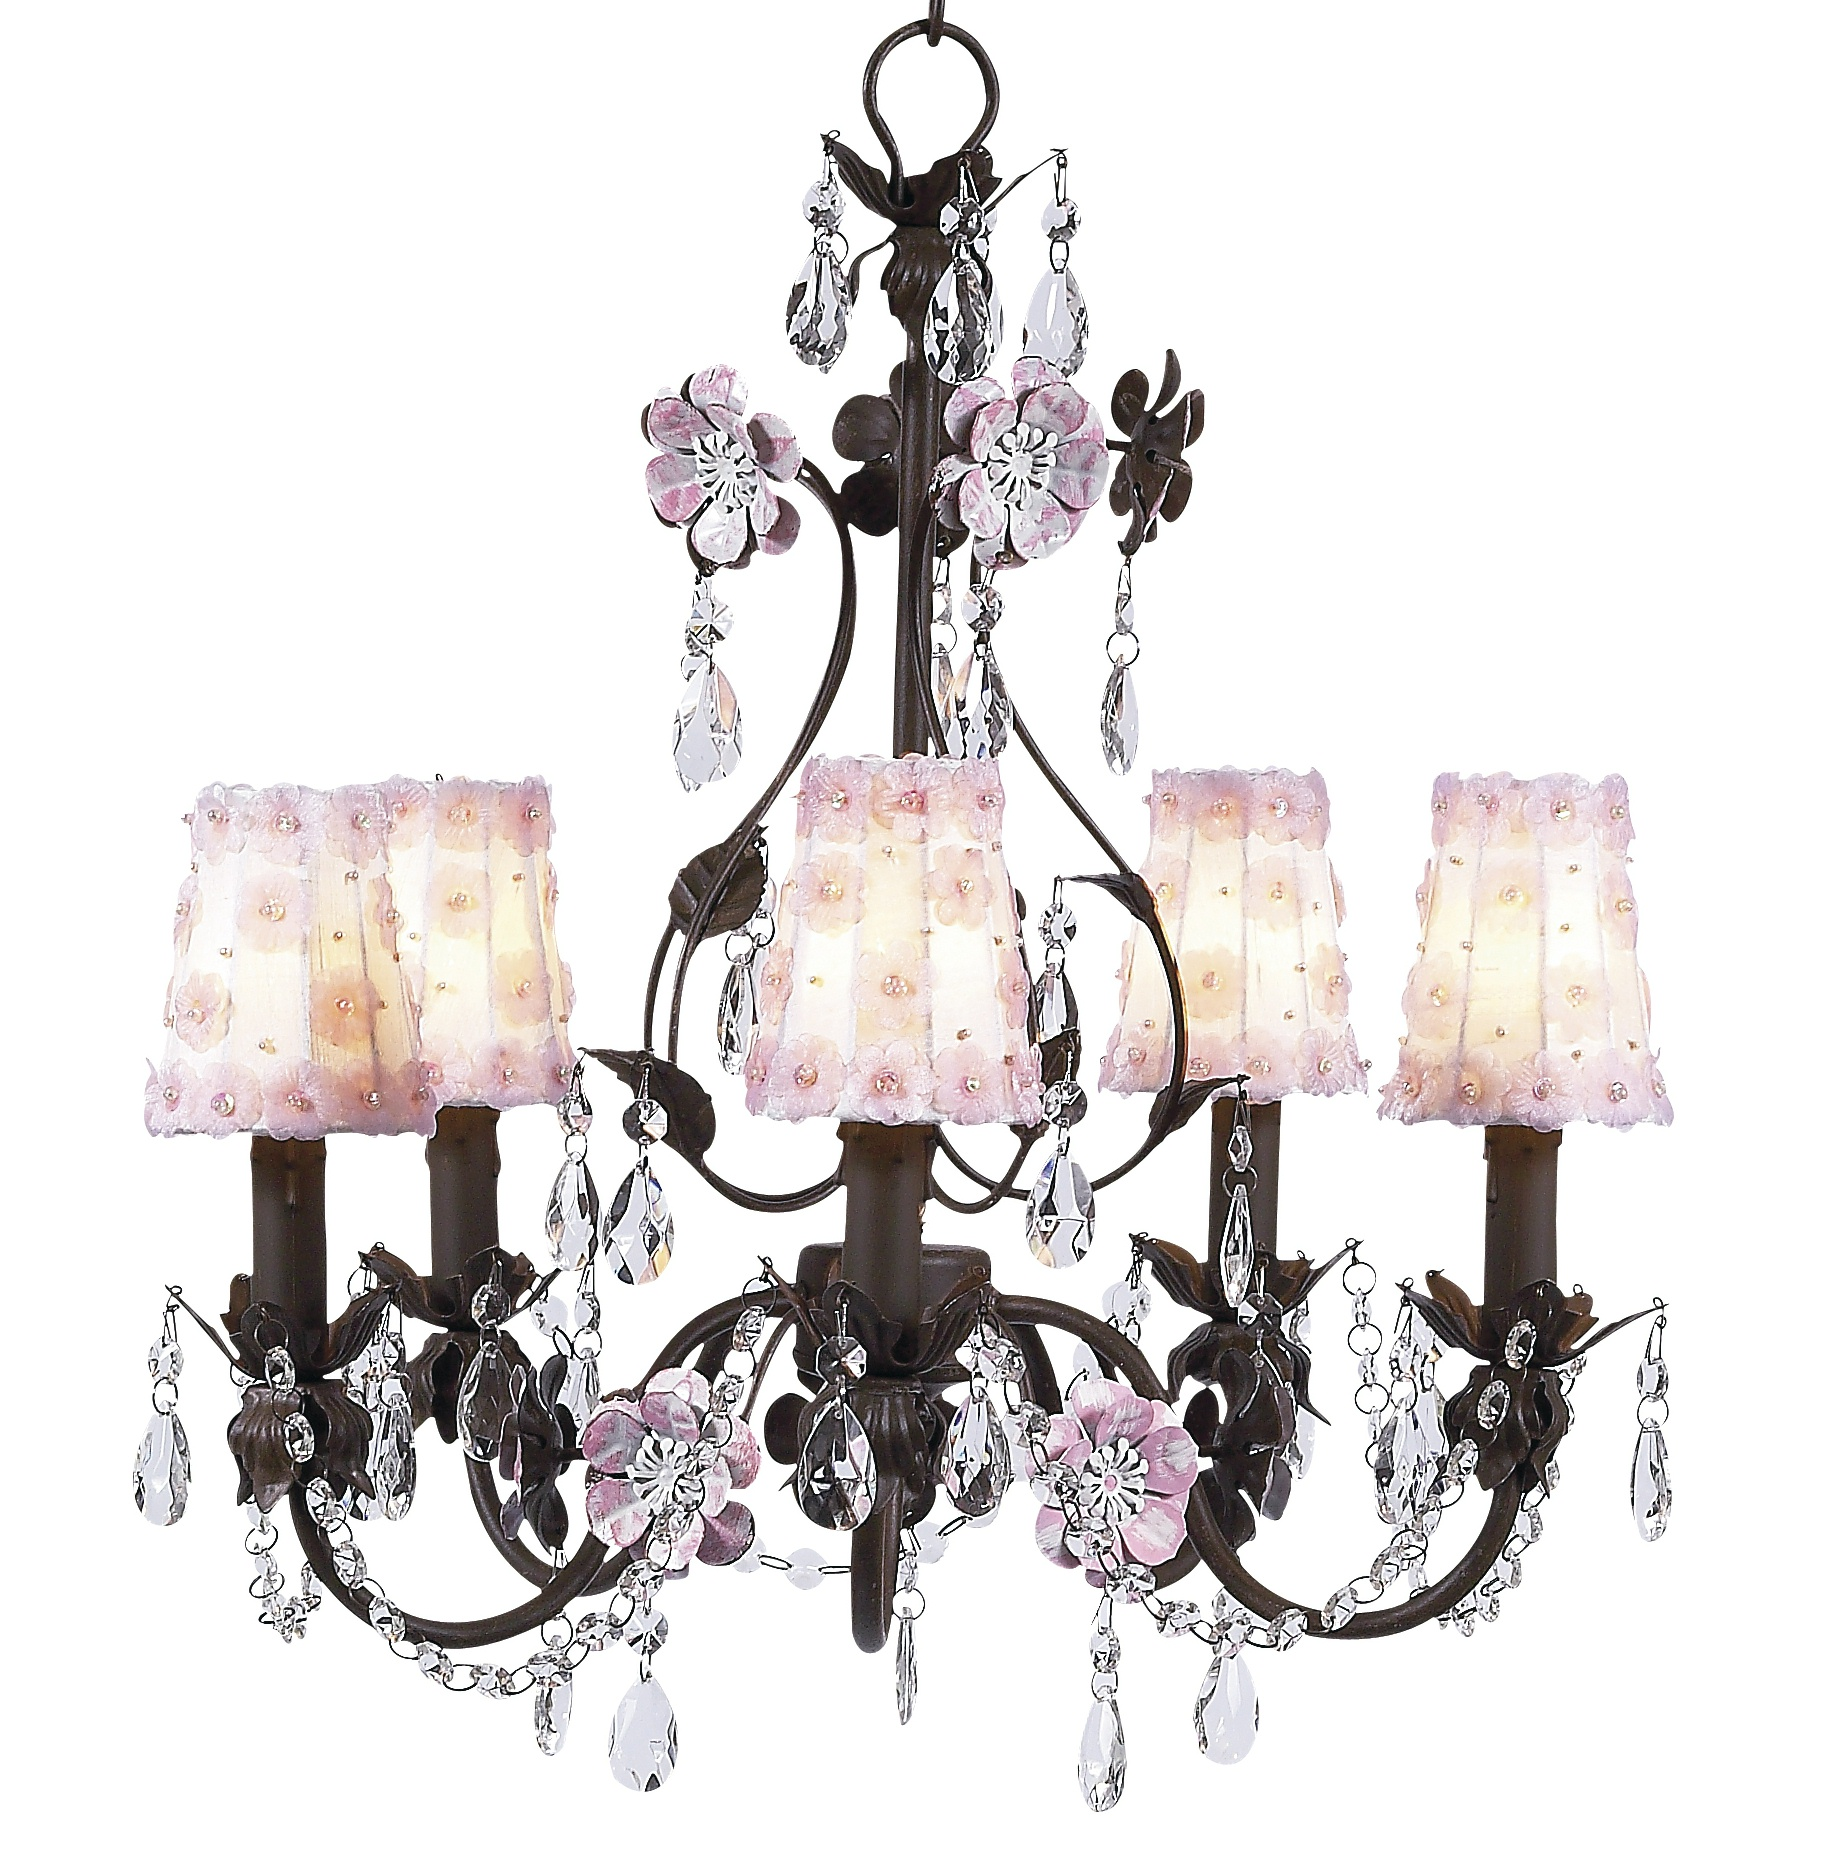 Nursery Chandelier Decorating